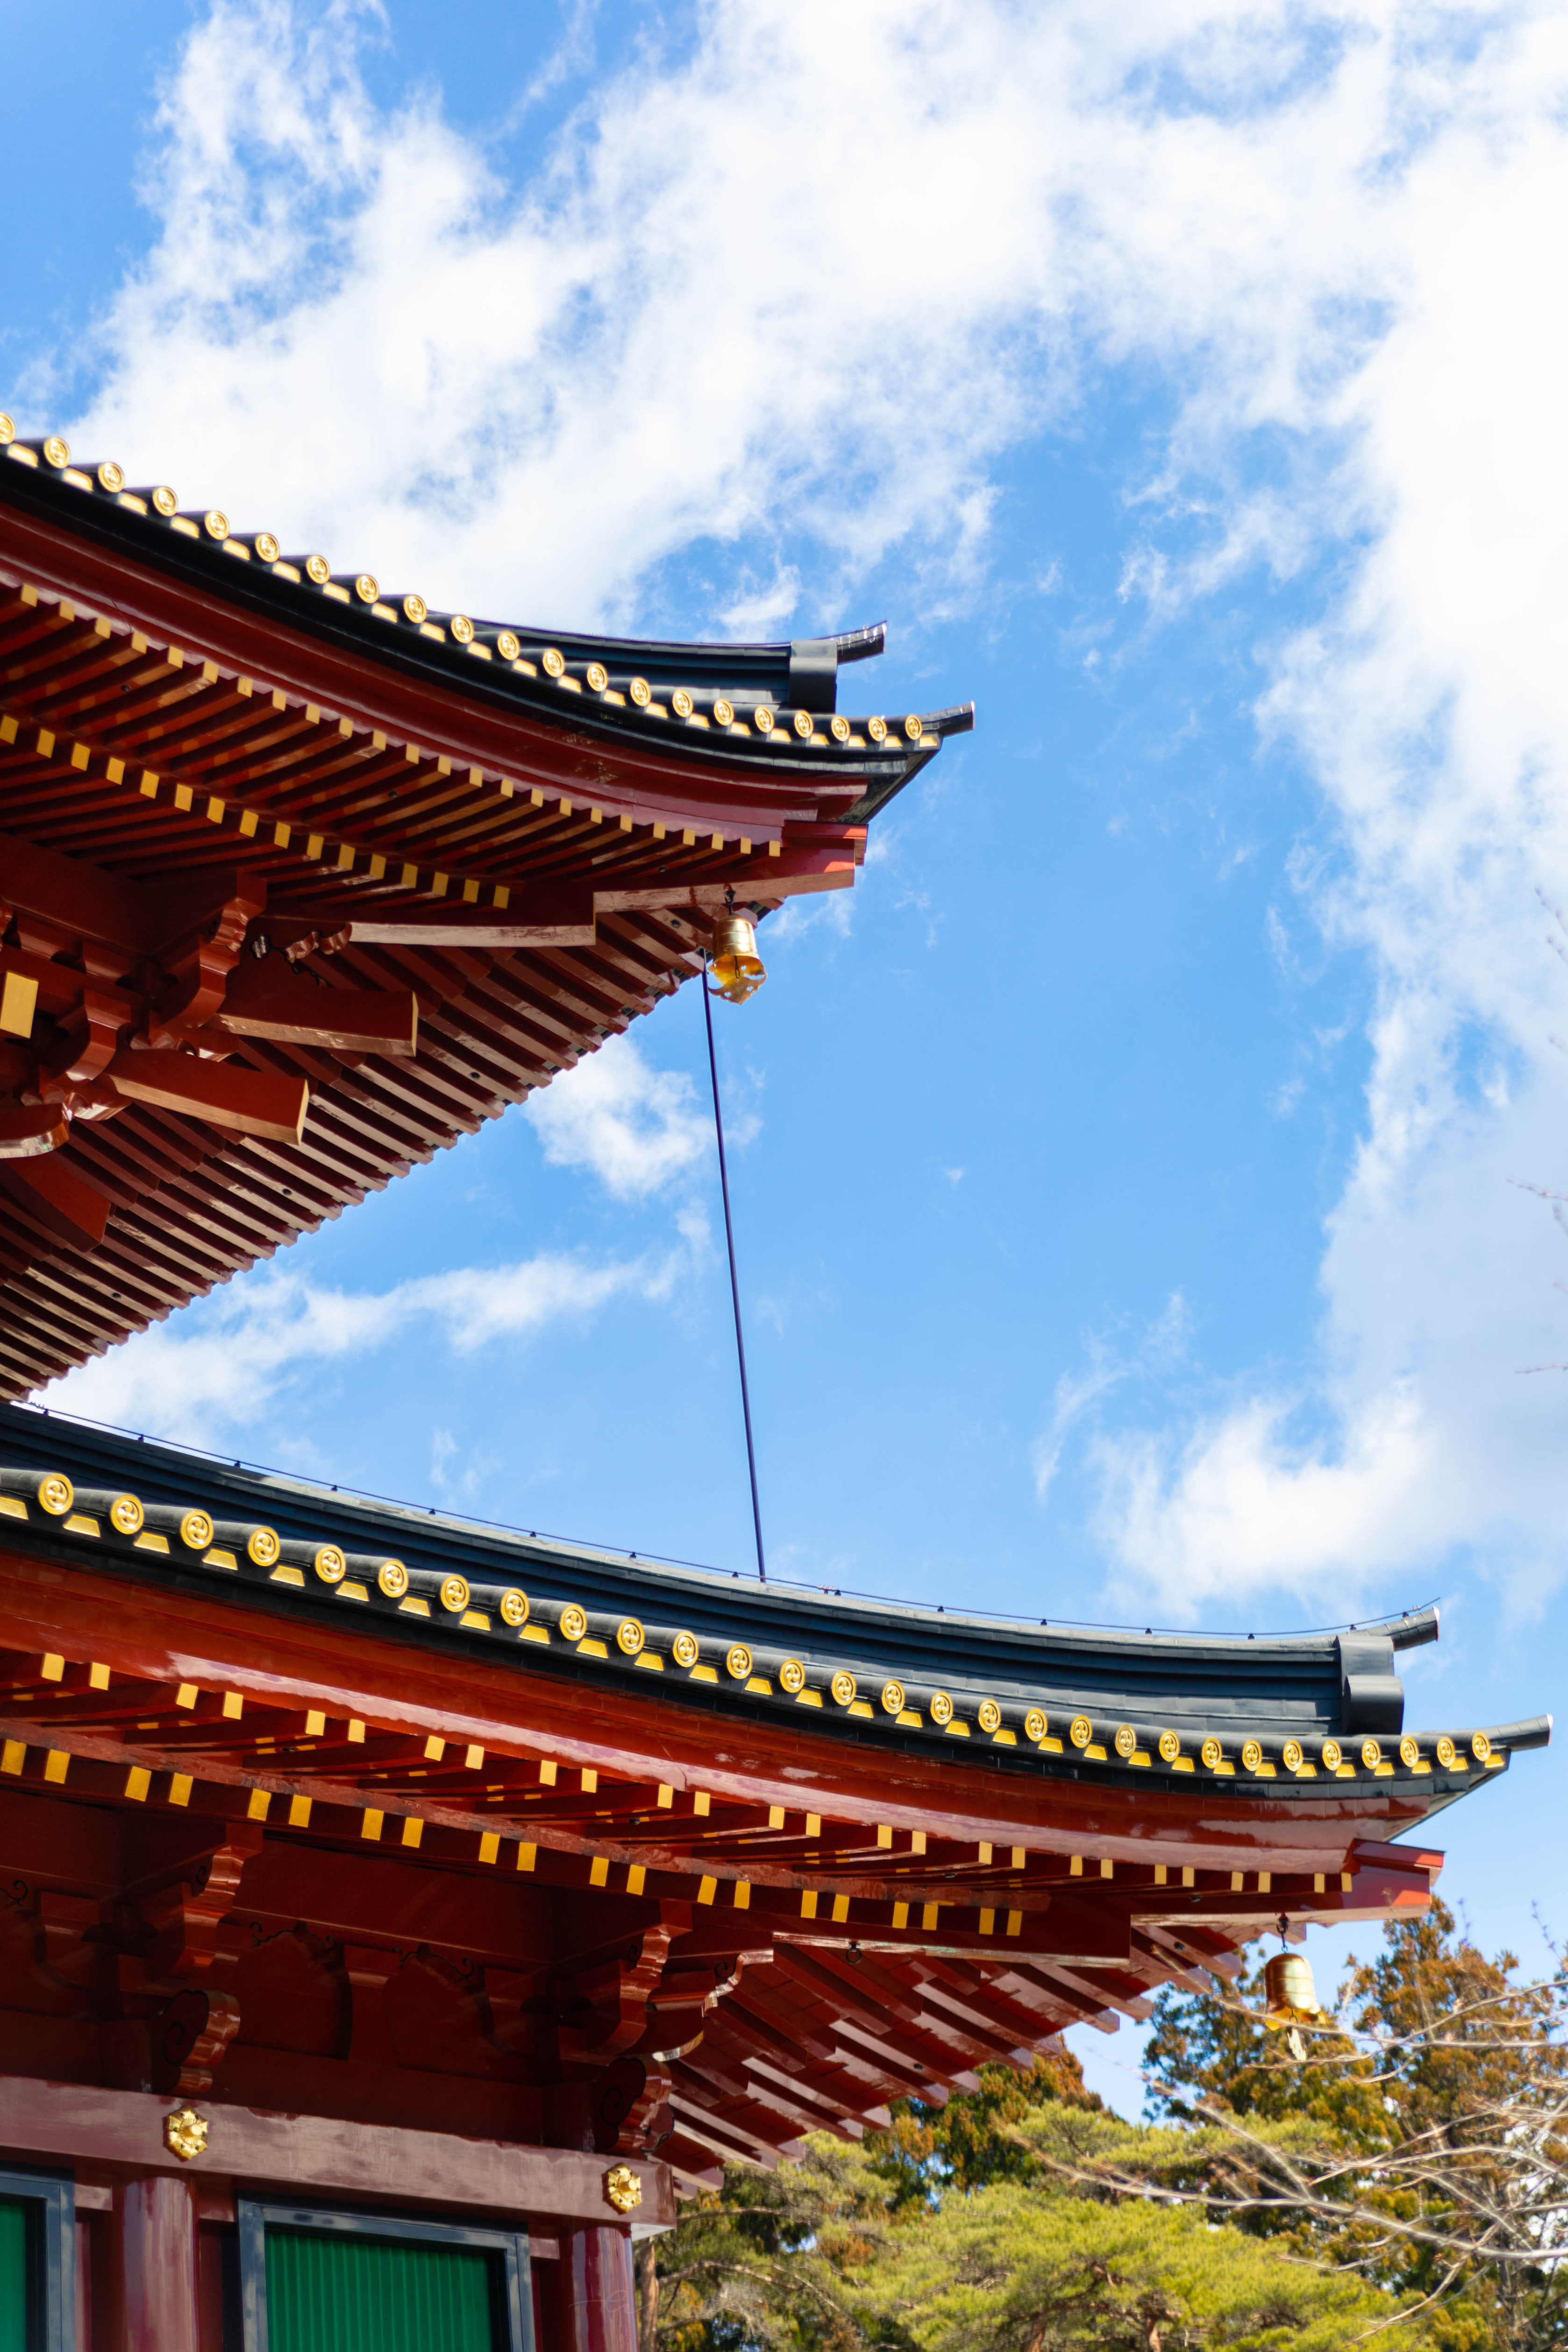 Red Pagoda of Rinnō-ji Buddhist Temple Against a Blue Sky in Nikko, Japan, the Ultimate Travel Guide Written, Researched, and Photographed by Travel Writer & Photographer Annie Fairfax